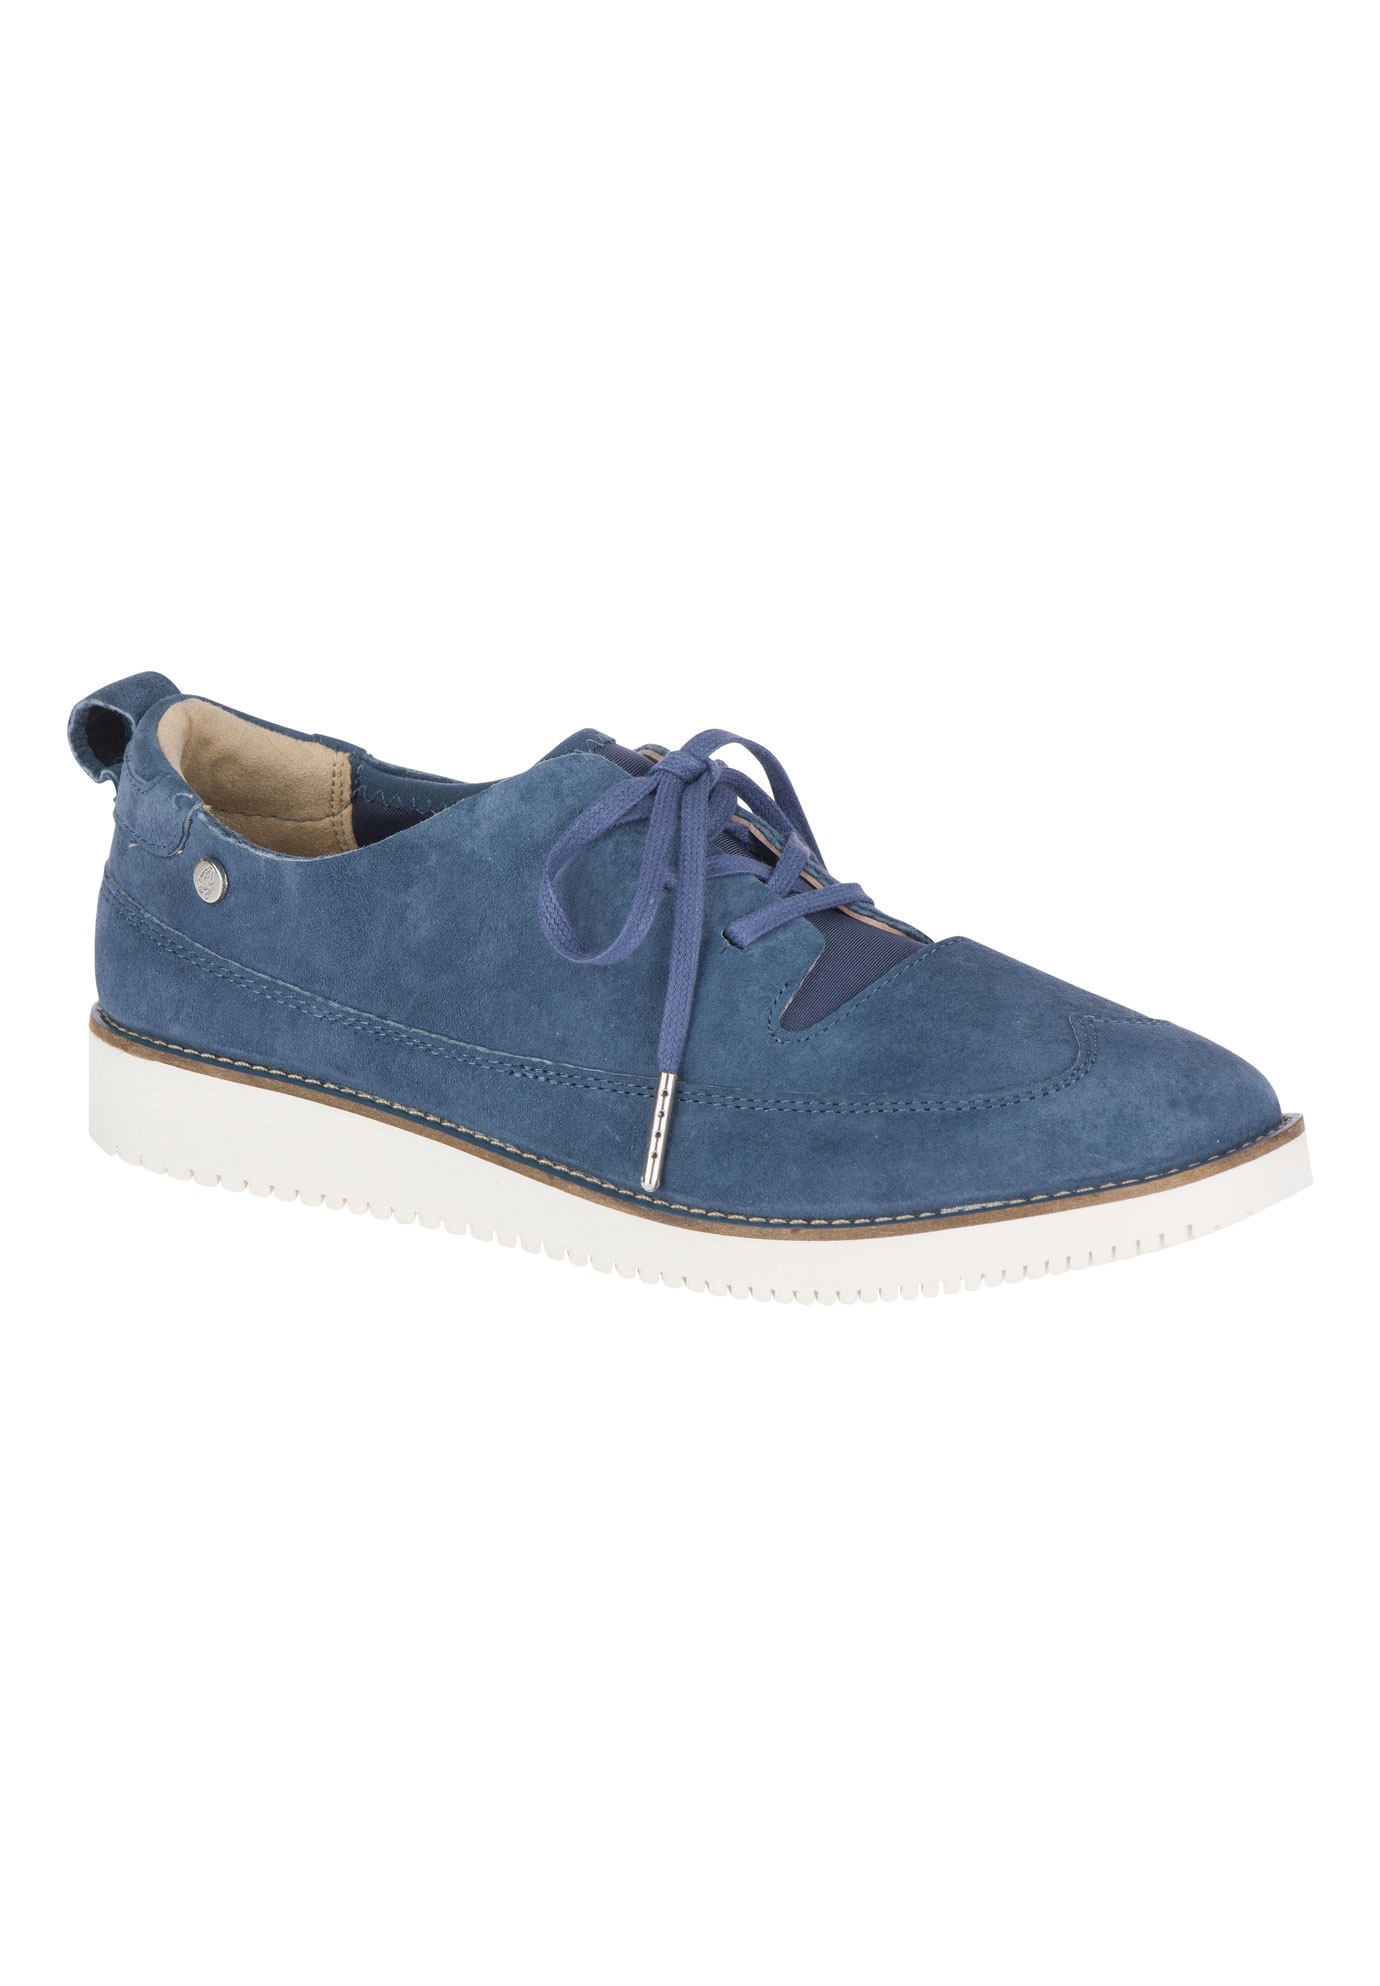 Chowchow Wt Oxford Shoes By Hush Puppies Women S Plus Size Clothing Products Shoes Suede Oxfords Oxford Shoes Outfit